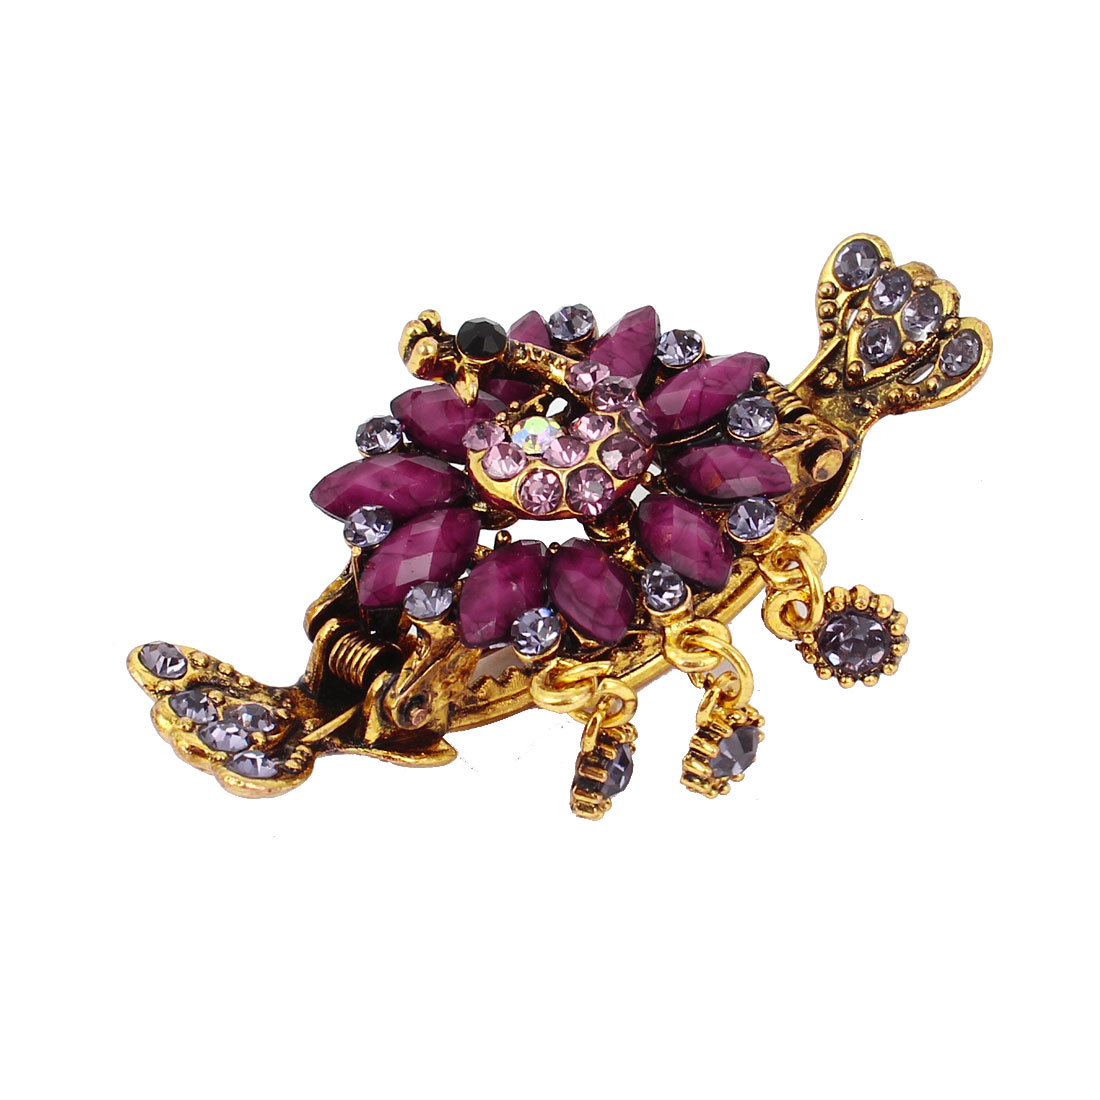 Woman Fuchsia Rhinestone Faux Crystal Inlaid Spring Loaded Hair Claw Clip Clamp